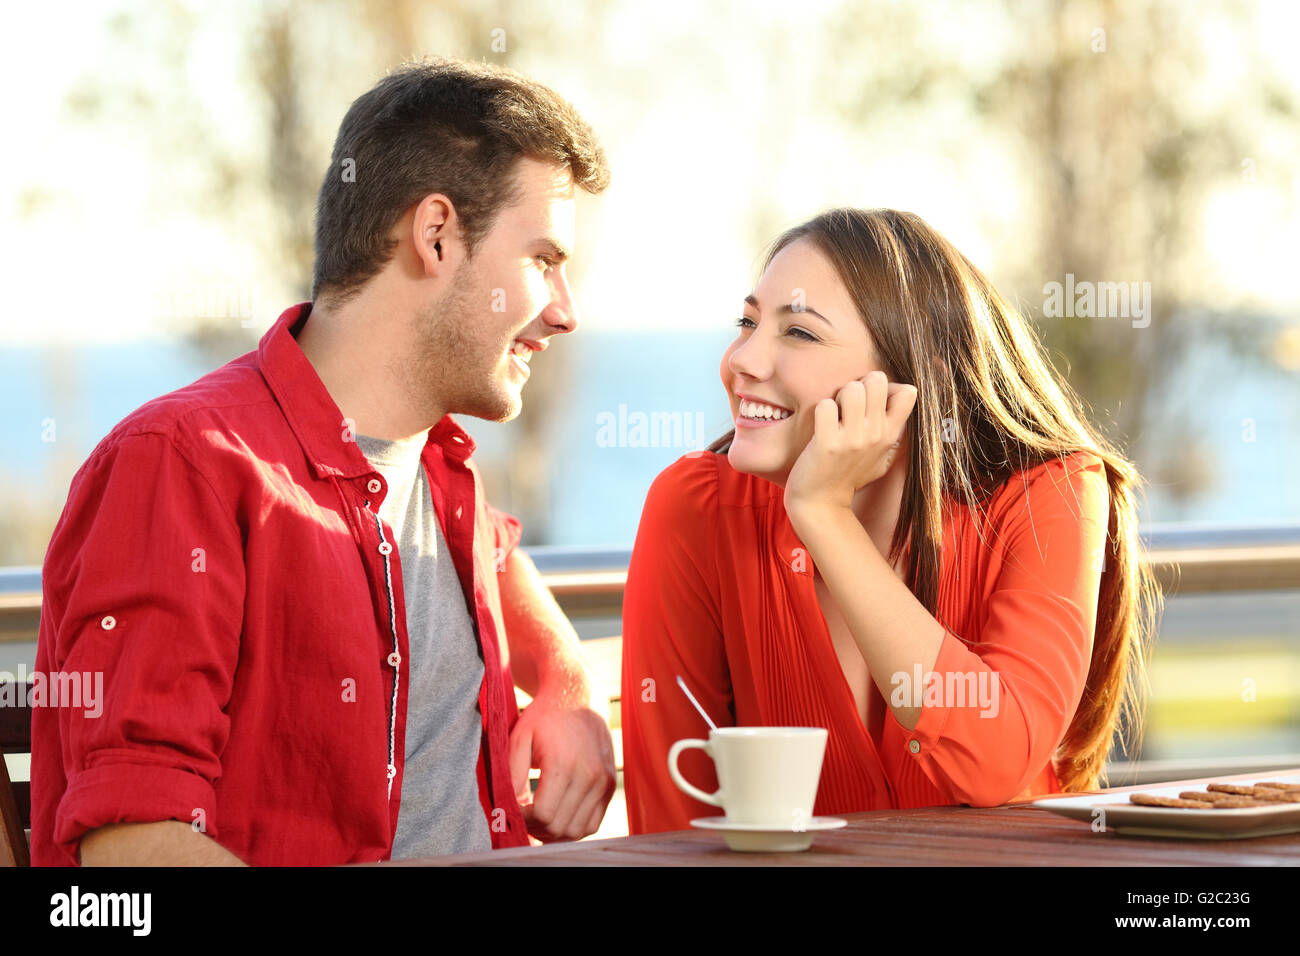 Candid couple date falling in love flirting in a terrace looking each other with tenderness thinking to kiss - Stock Image